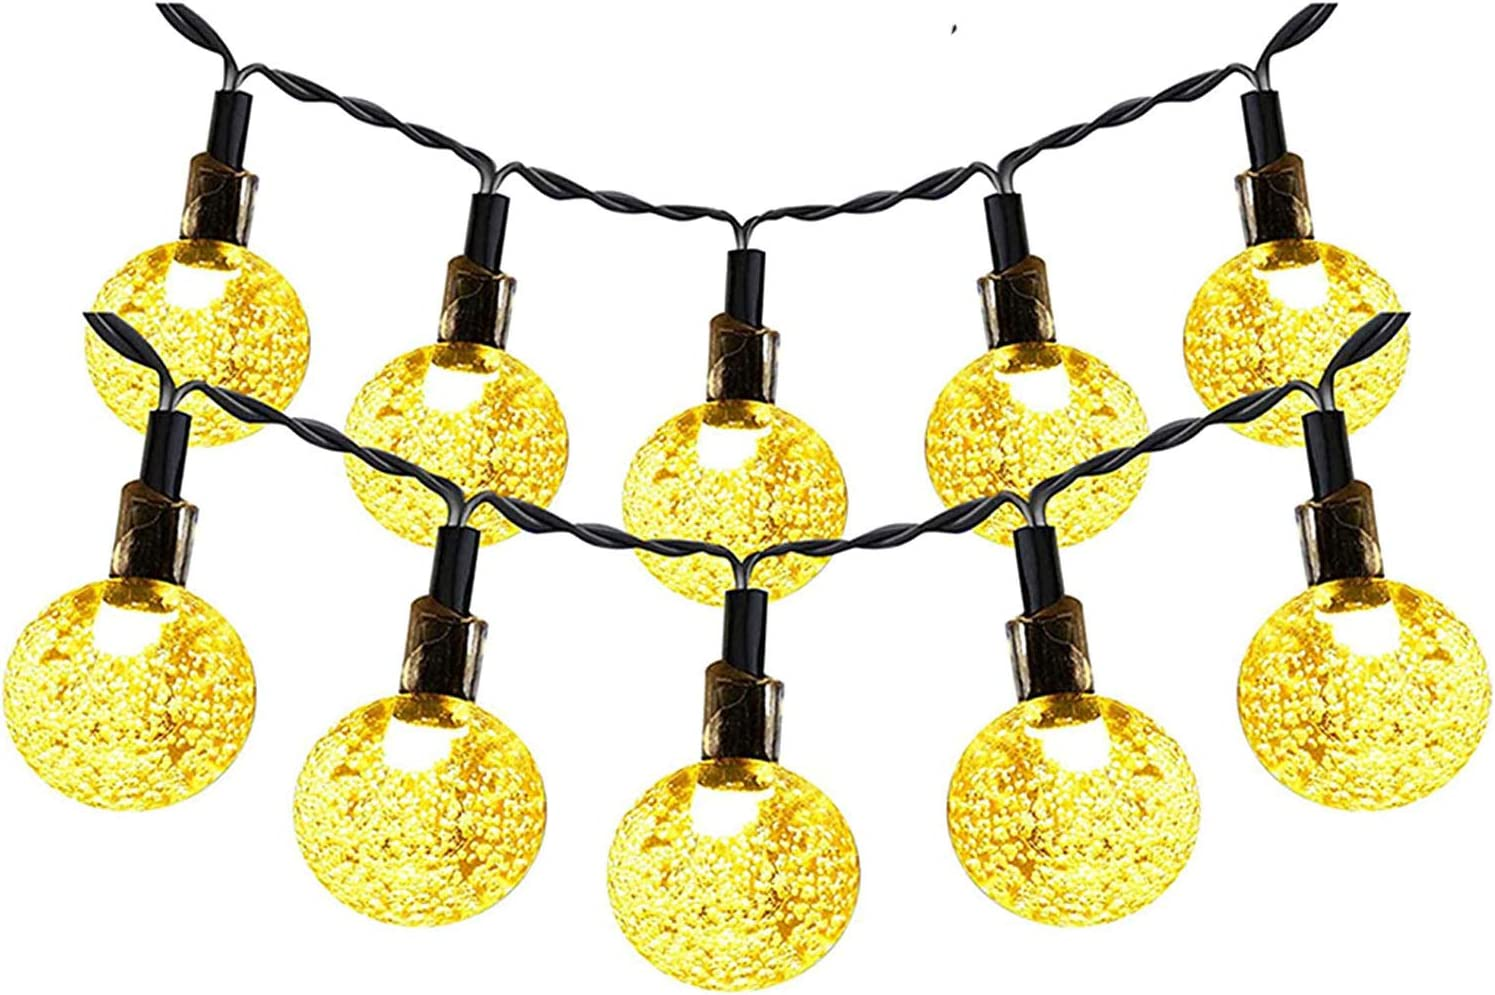 Solar String Lights Outdoor, 36FT 60 LED Solar Powered Patio Lights Waterproof Globe Crystal Ball Fairy Light, 8 Modes Home, Garden, Party, Patio Decor, Festival Decorative Lighting(Warm Whtie)